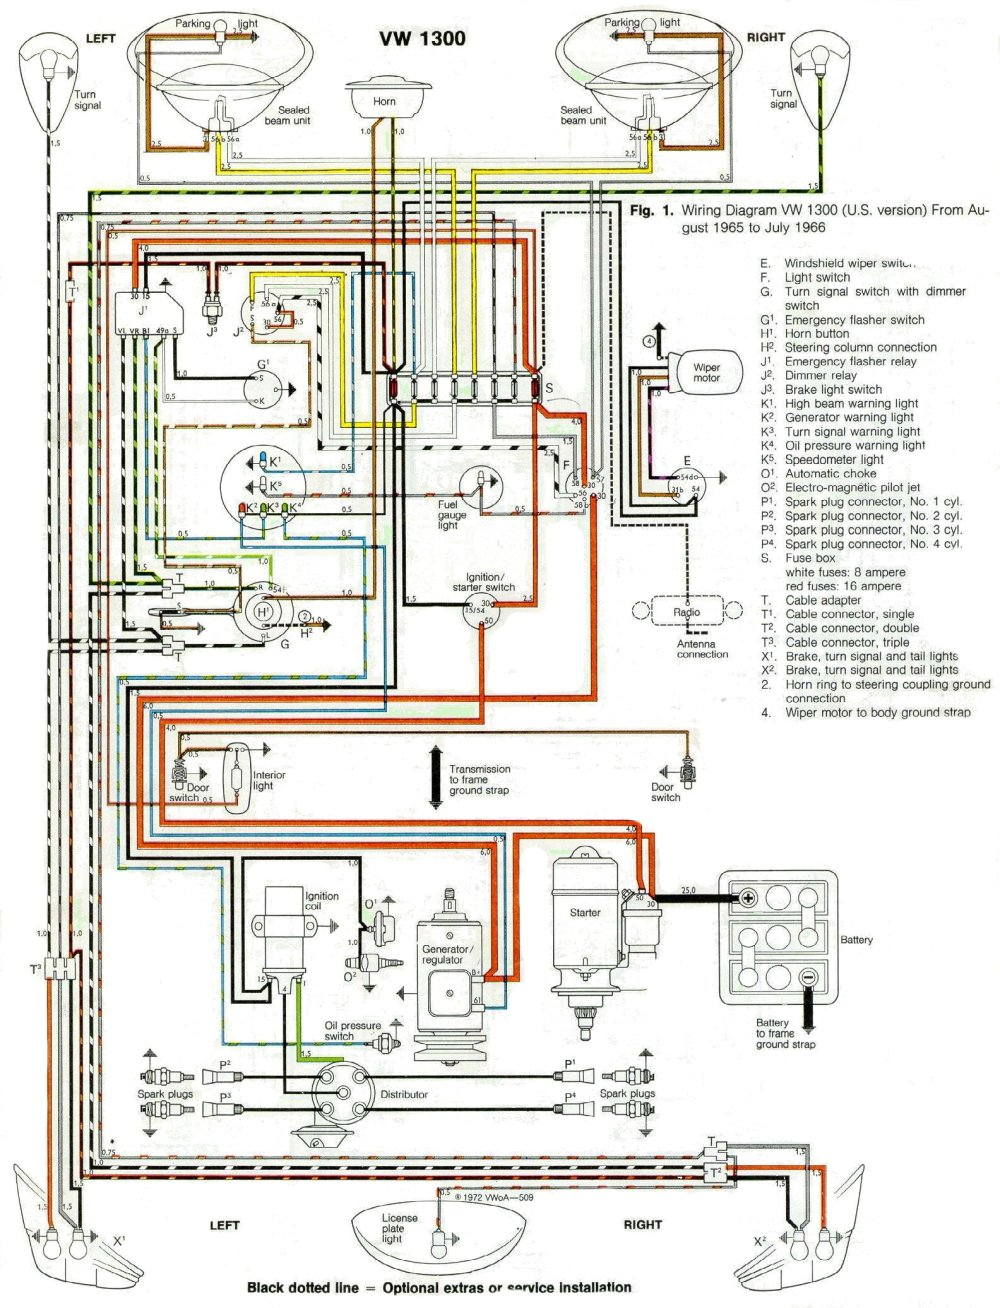 medium resolution of 1966 wiring diagram vw beetle wiring diagram 1970 vw beetle wiring diagram